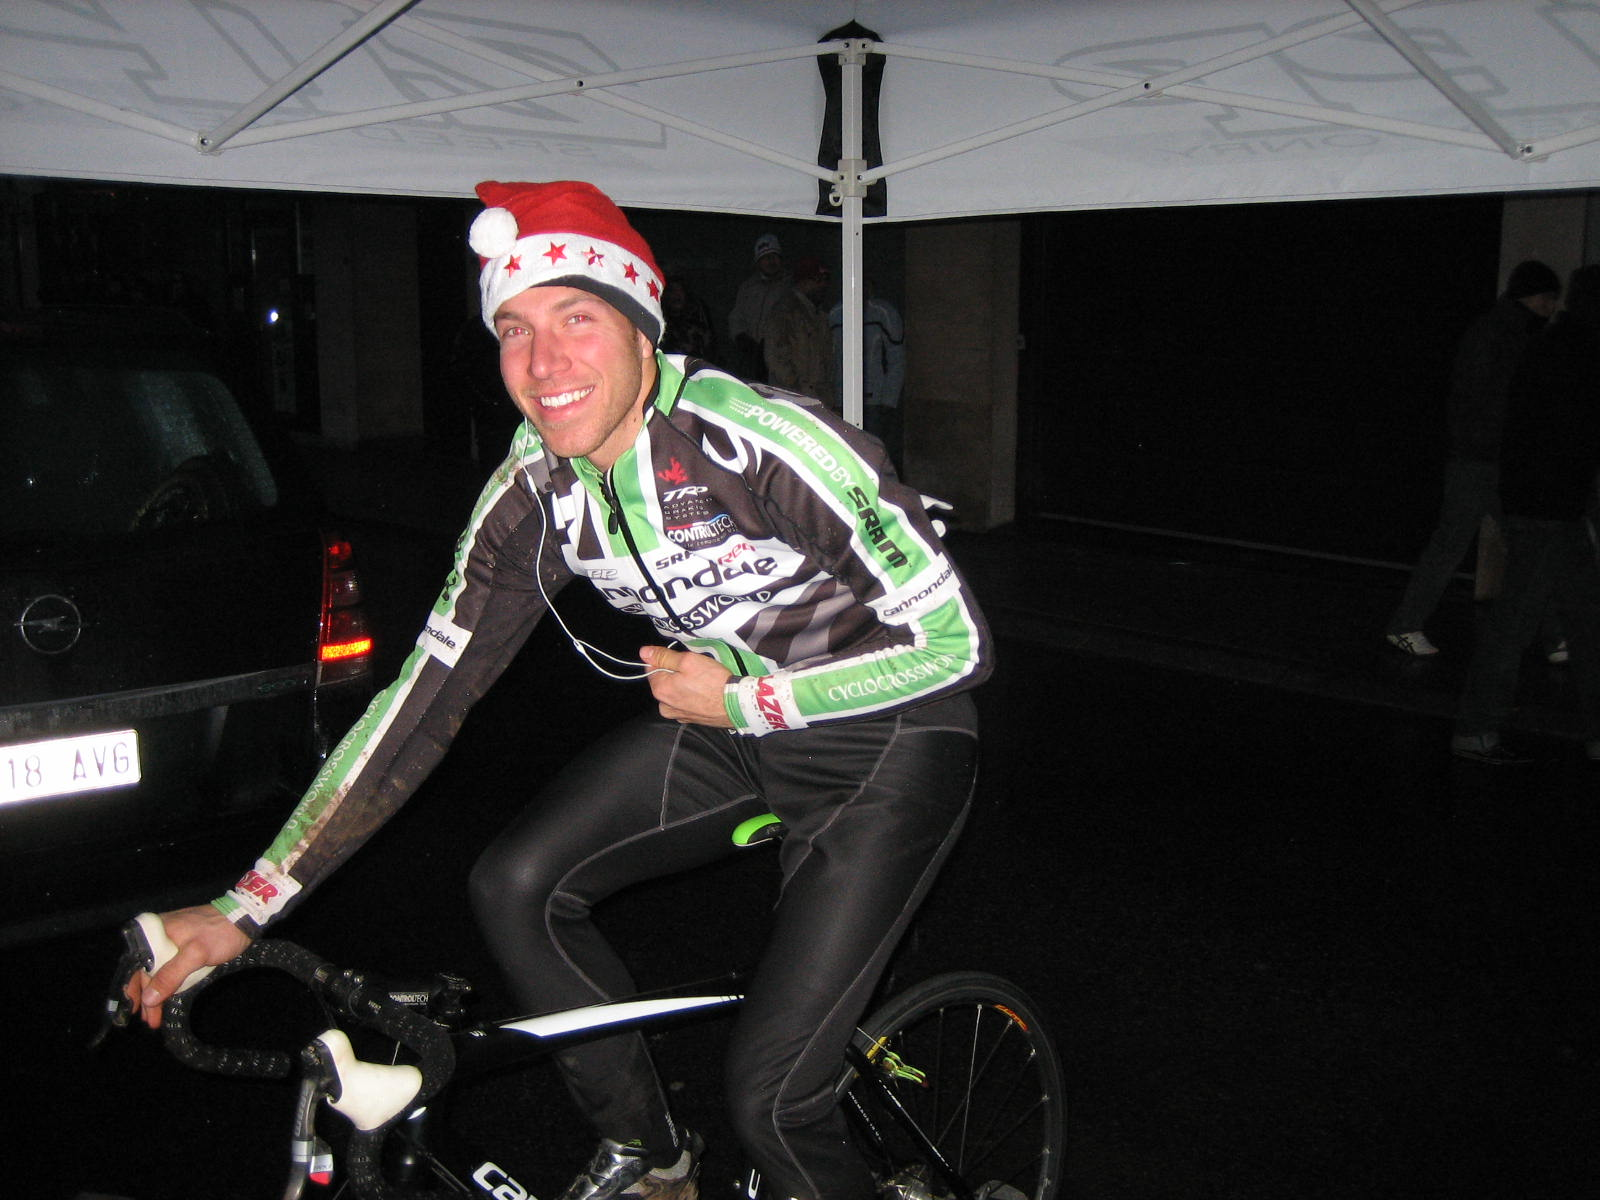 Jeremy Powers warms up for Diegem  ? Christine Vardaros